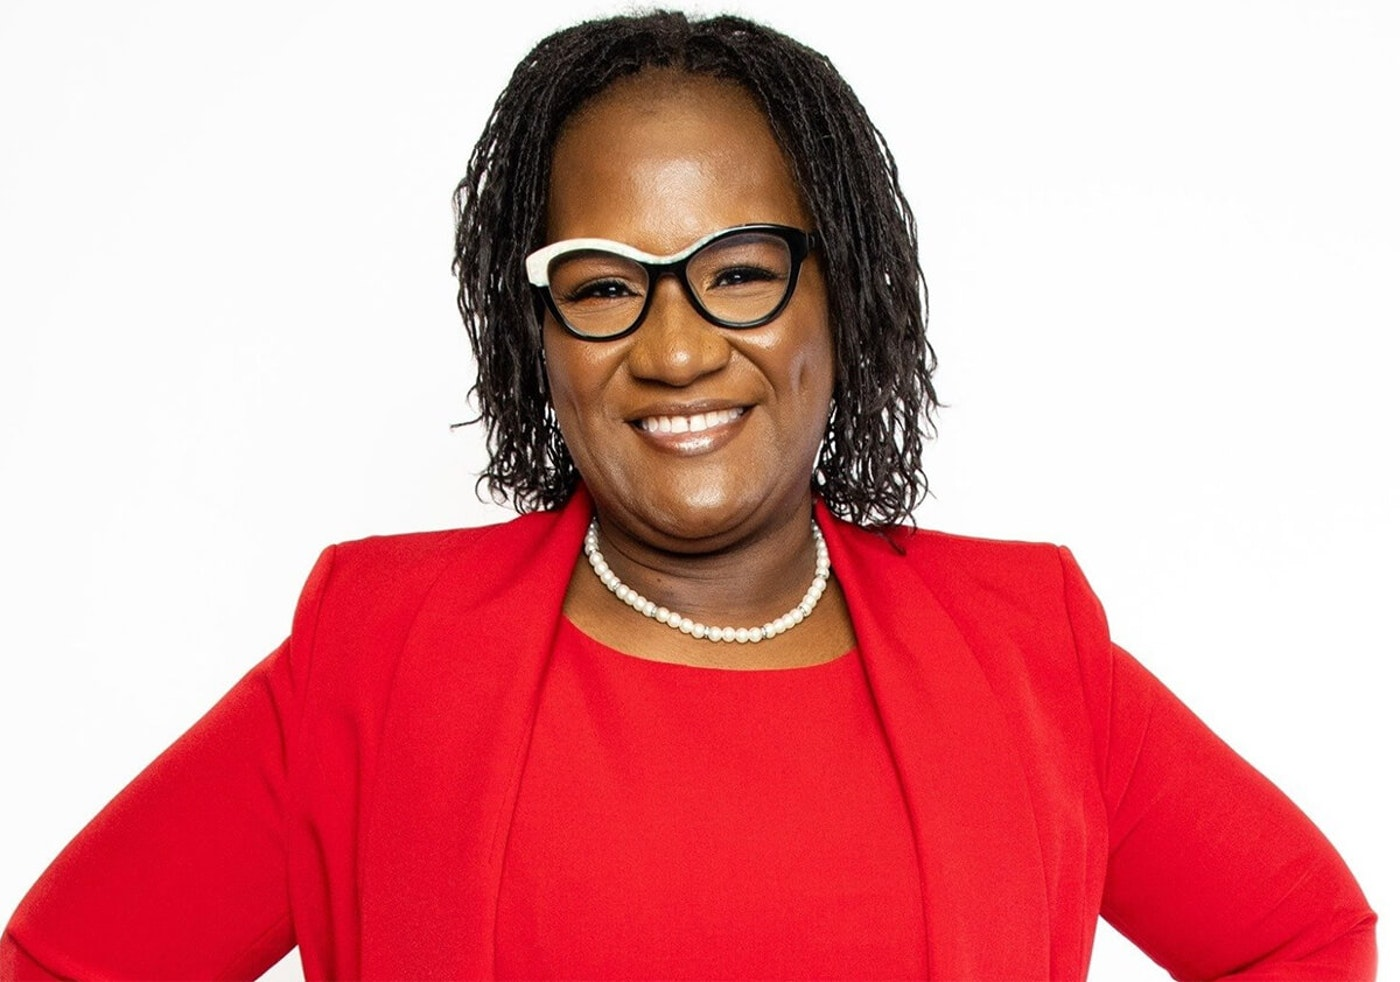 Dr. Shandowlyon Hendricks-Williams, director of Gov. Tony Evers' Milwaukee office, is a candidate for state superintendent. (Image via Dr. Hendricks for Education)